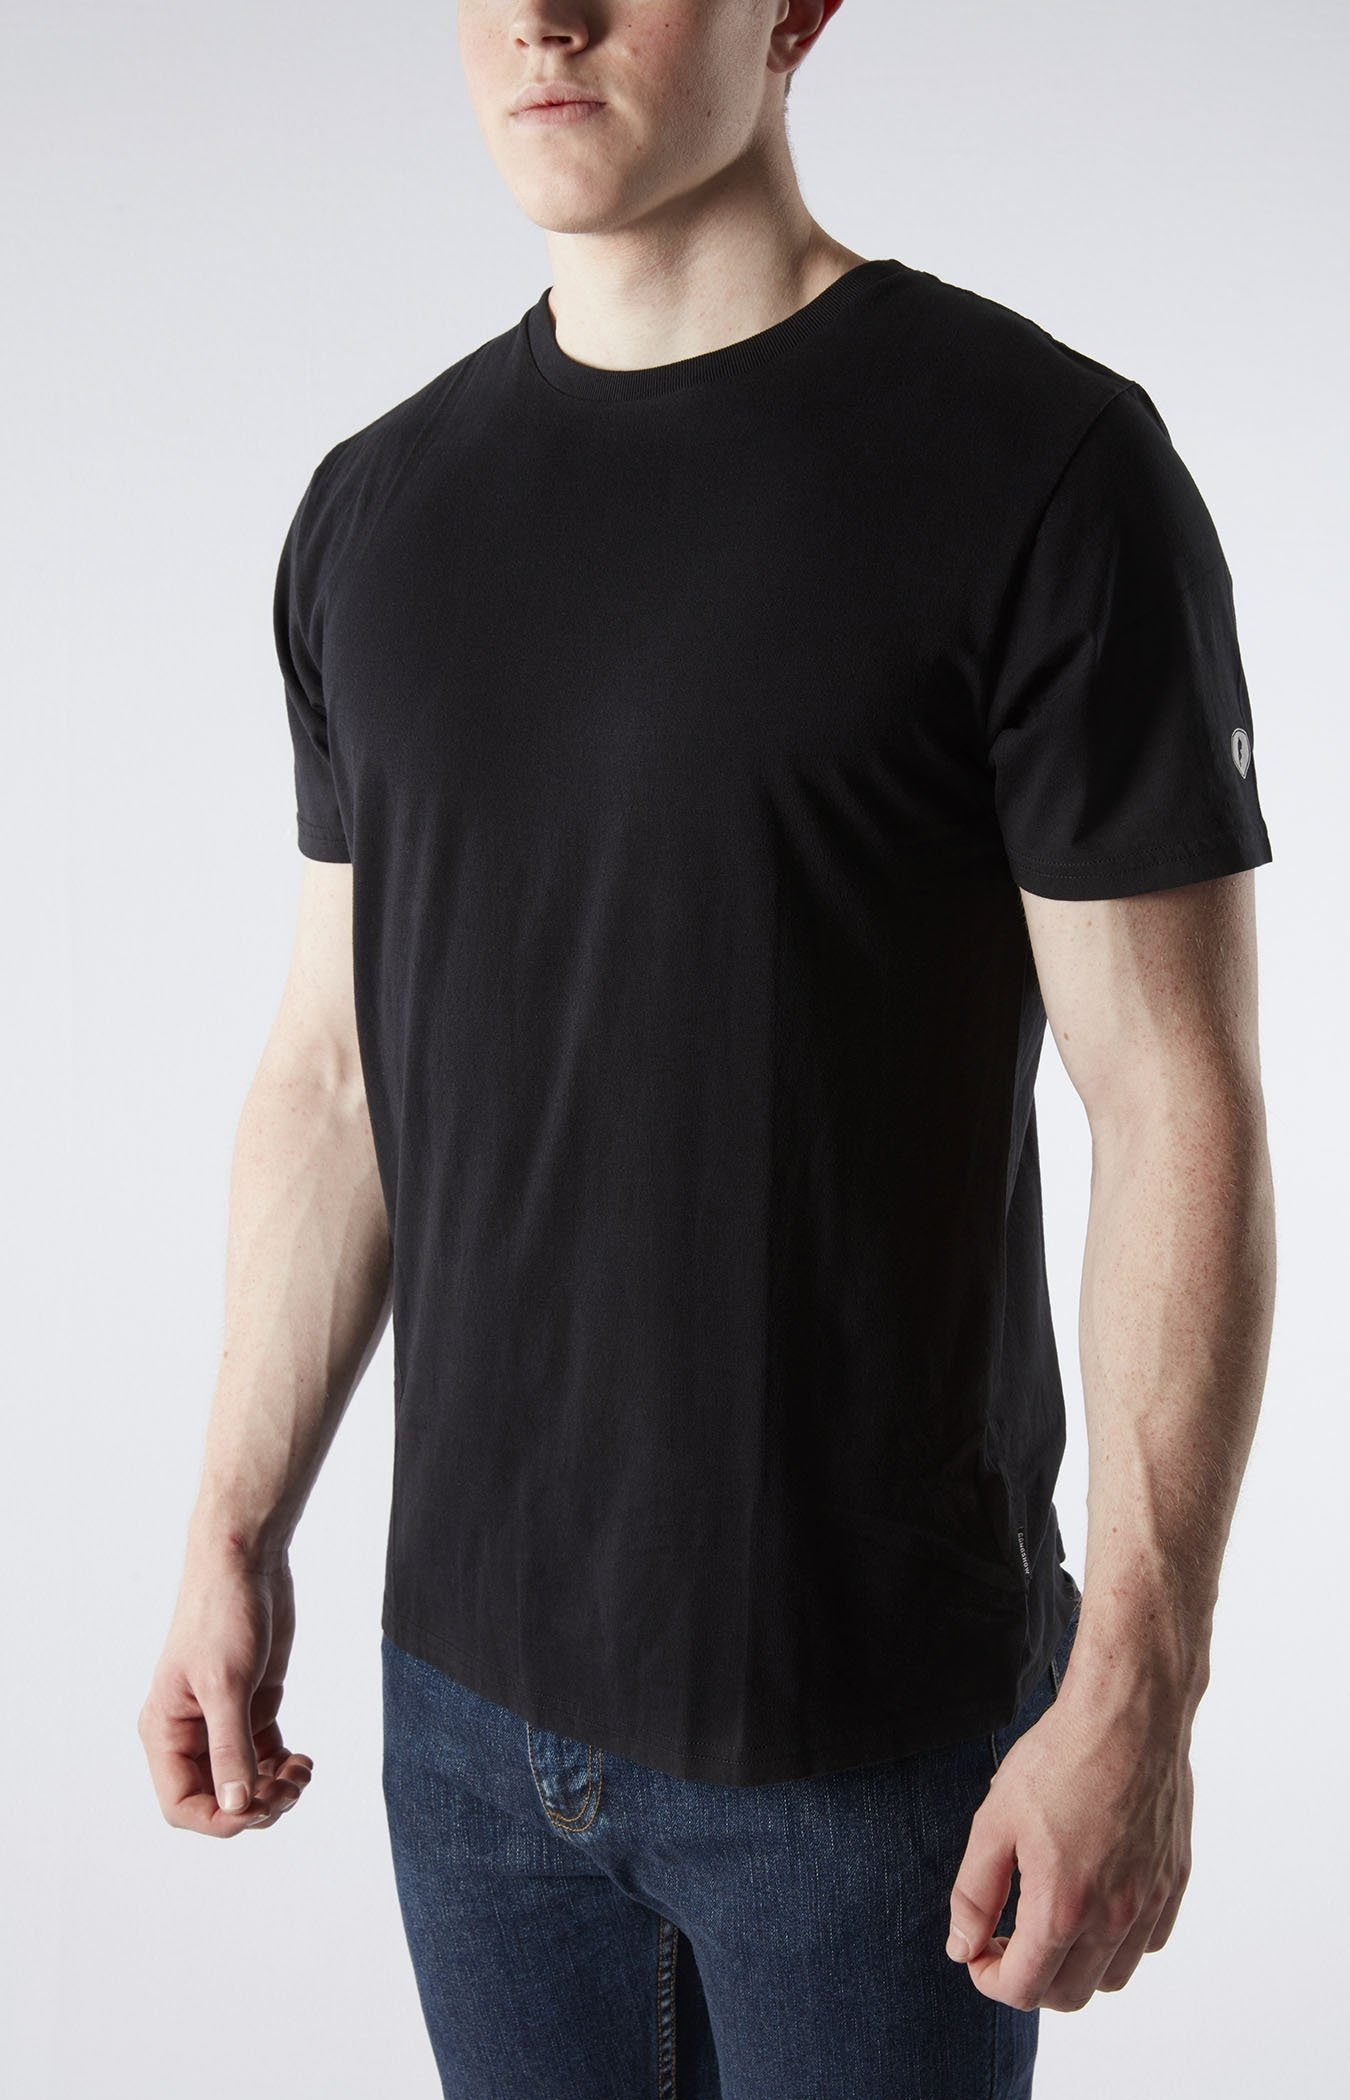 b2b5d95fa380 Blank Crew Neck Black Hockey Tshirt